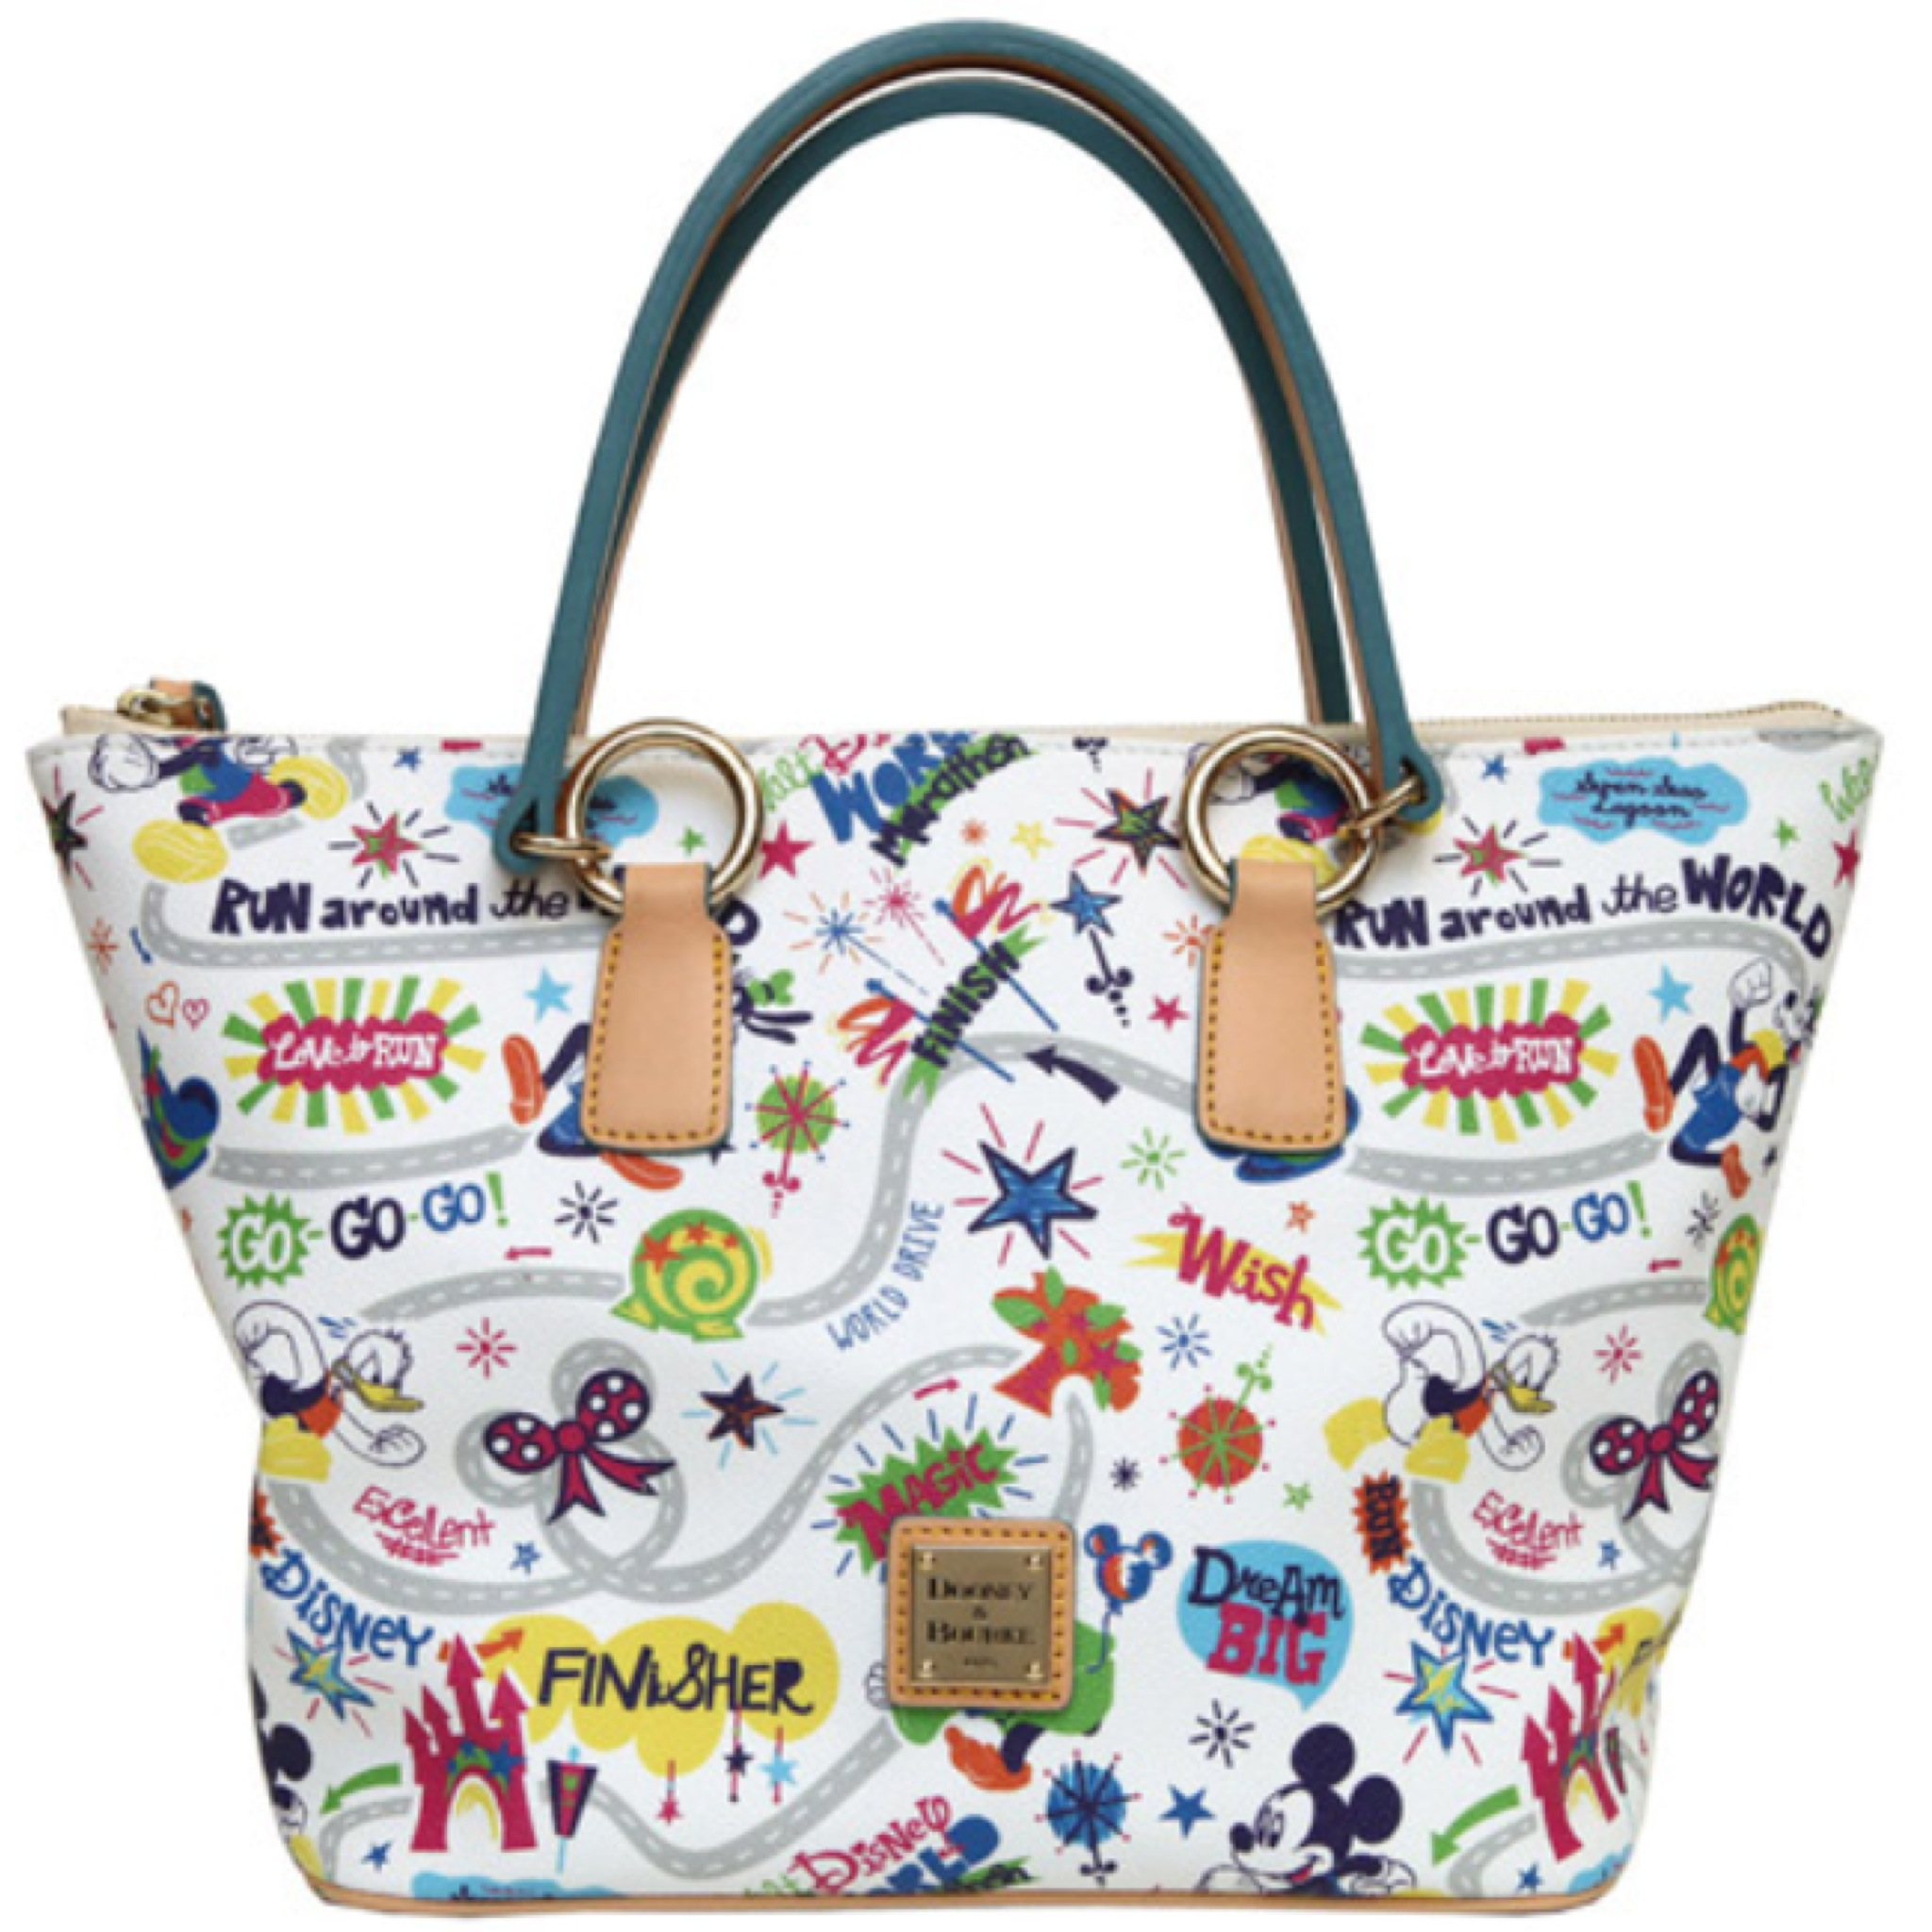 2017 Rundisney Disney Dooney Bourke Purse Bag Tote Run Marathon